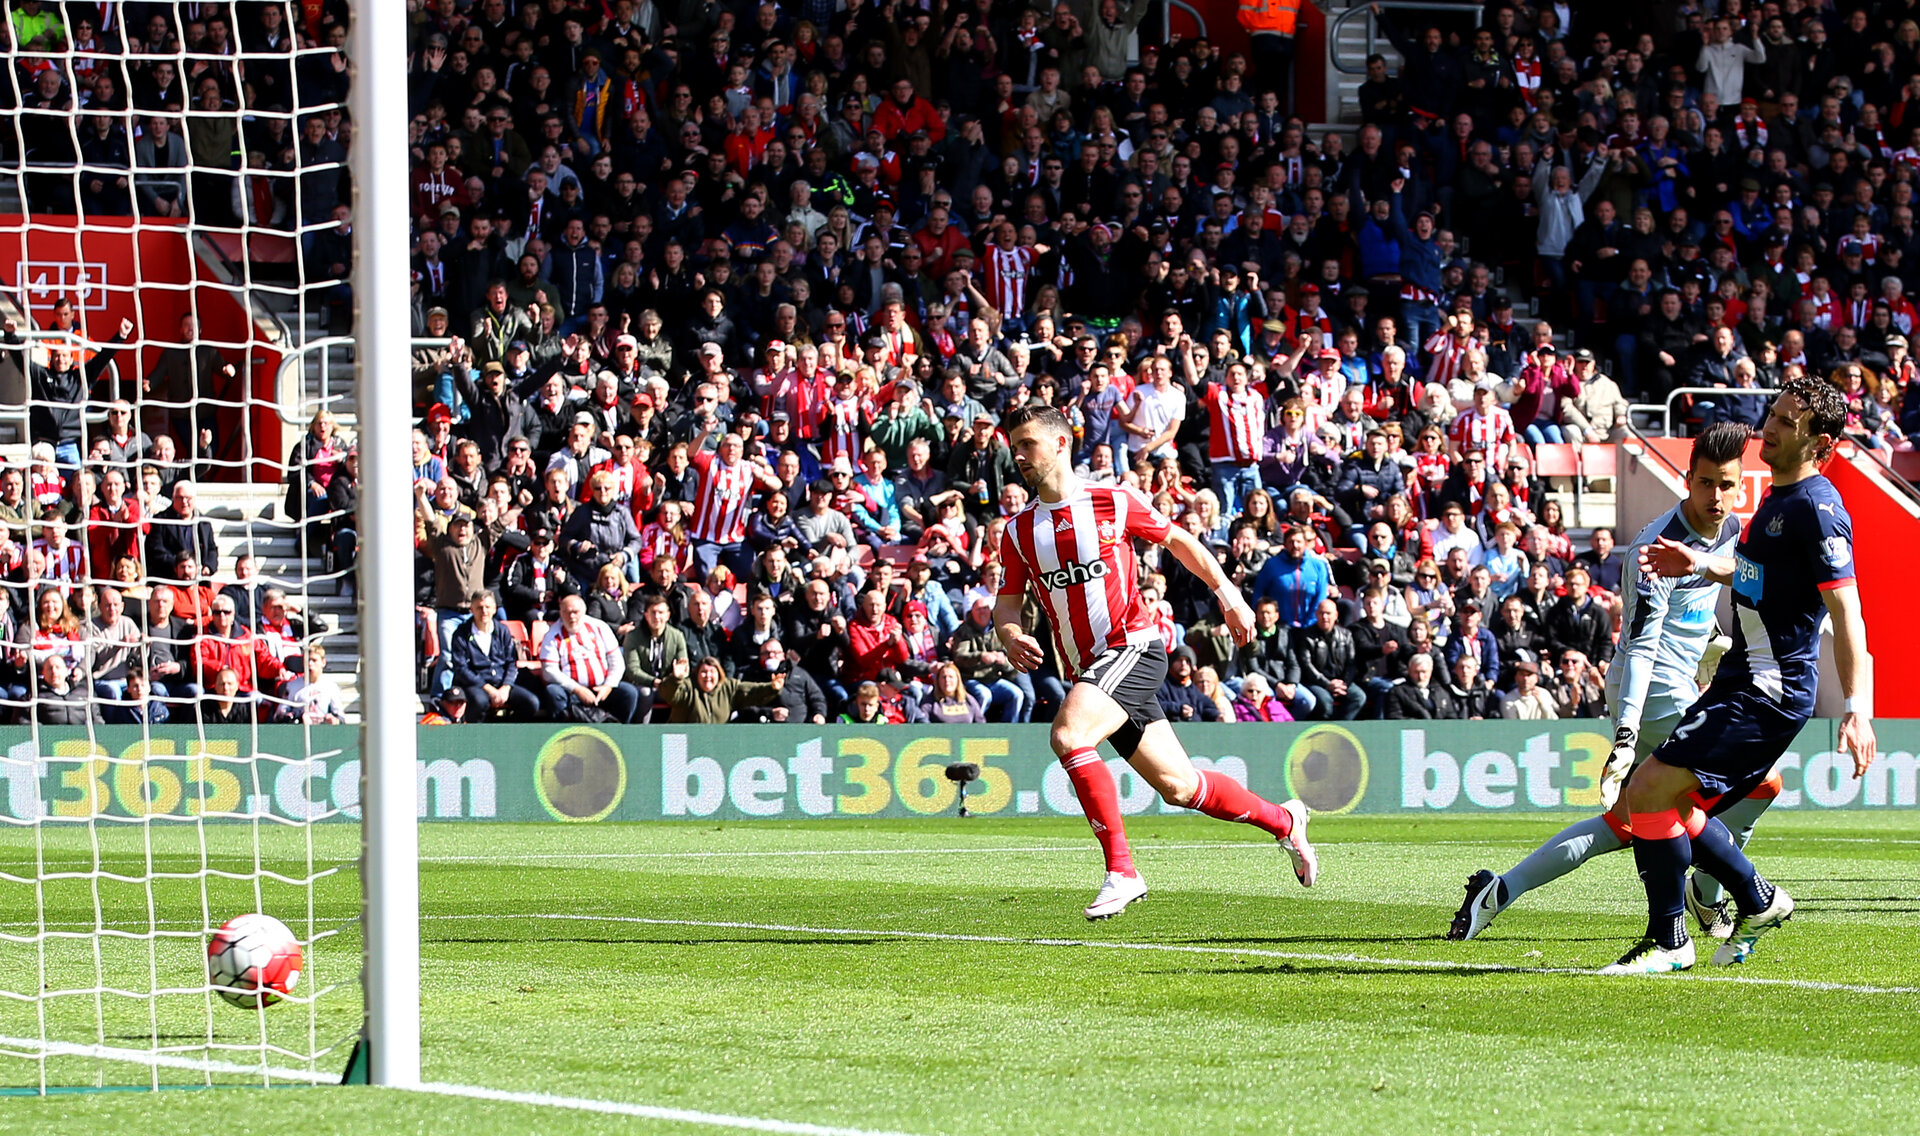 Shane Long scores during the Barclays Premier League match between Southampton and Newcastle United at St Mary's Stadium, Southampton, England on 9 April 2016.